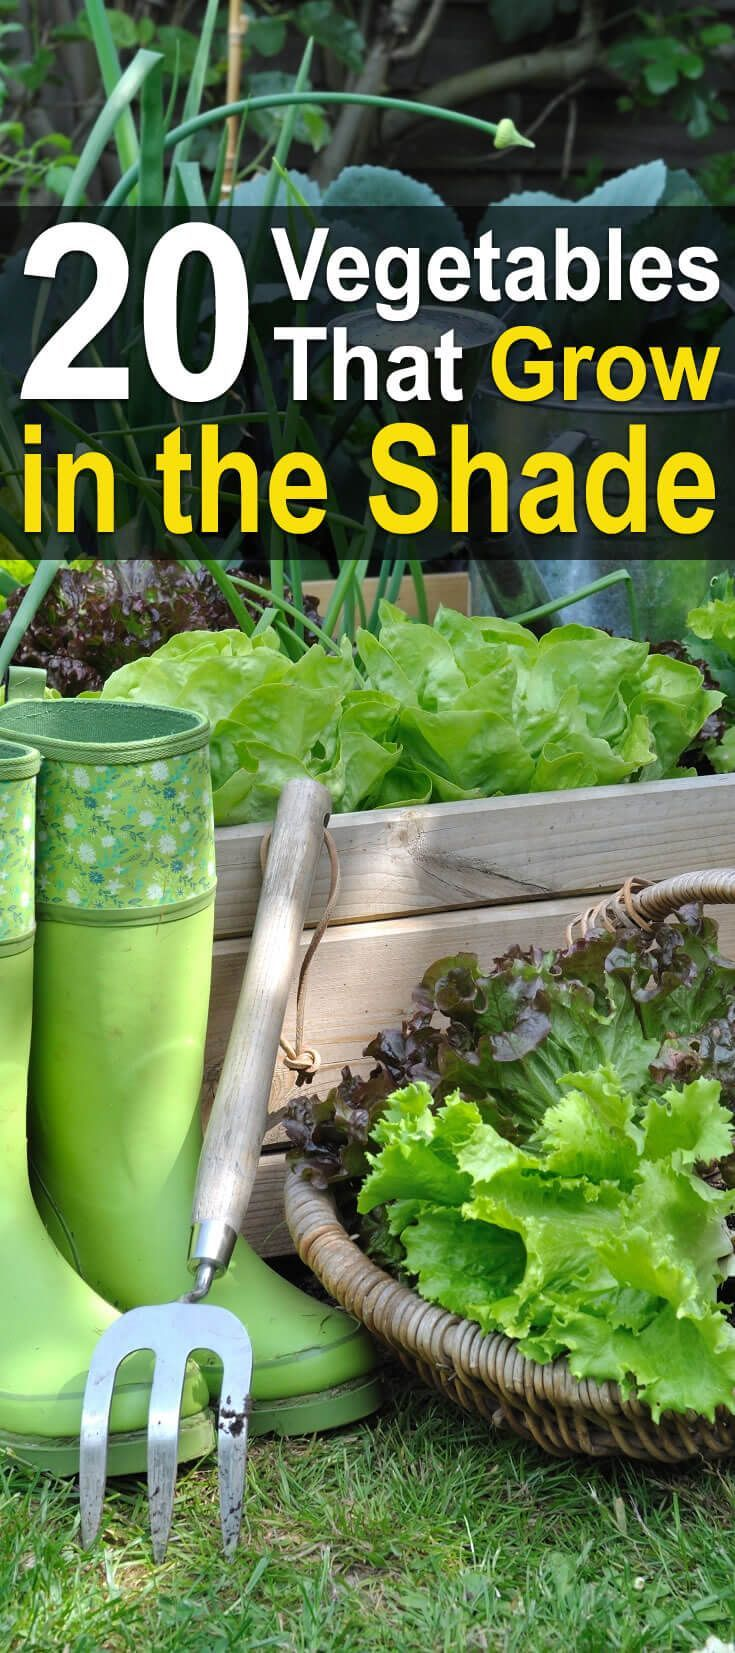 If you can find a way to get 3 or 4 hours of sunlight in one area, you can plant a wide variety of vegetables that only need a few hours of sunlight a day.